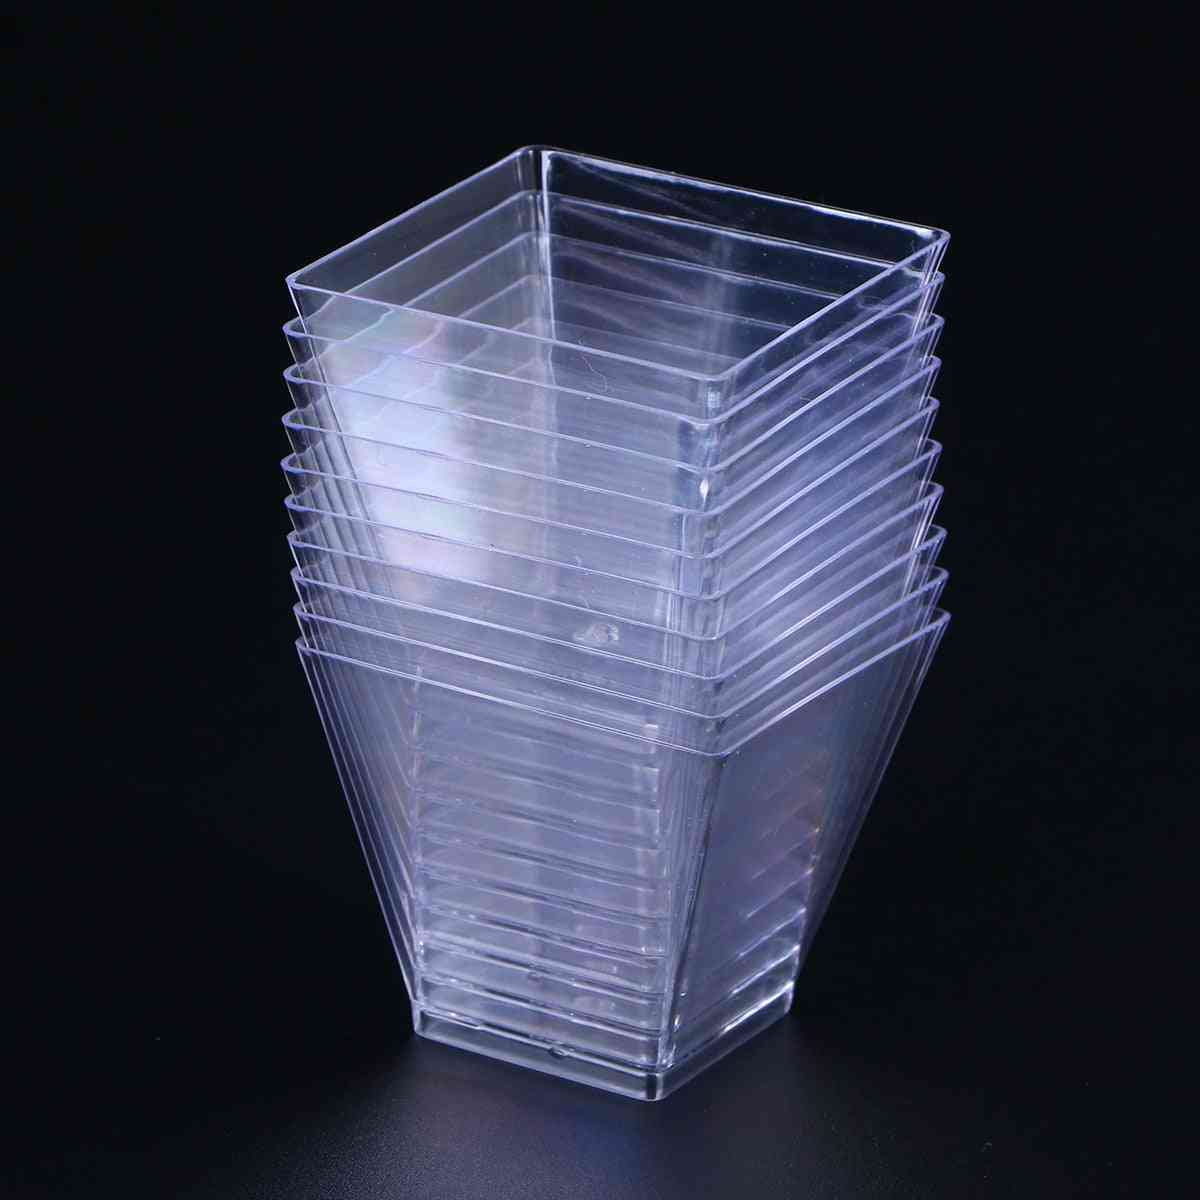 Disposable Plastic Portion Cups - Trapezoidal Dessert Container